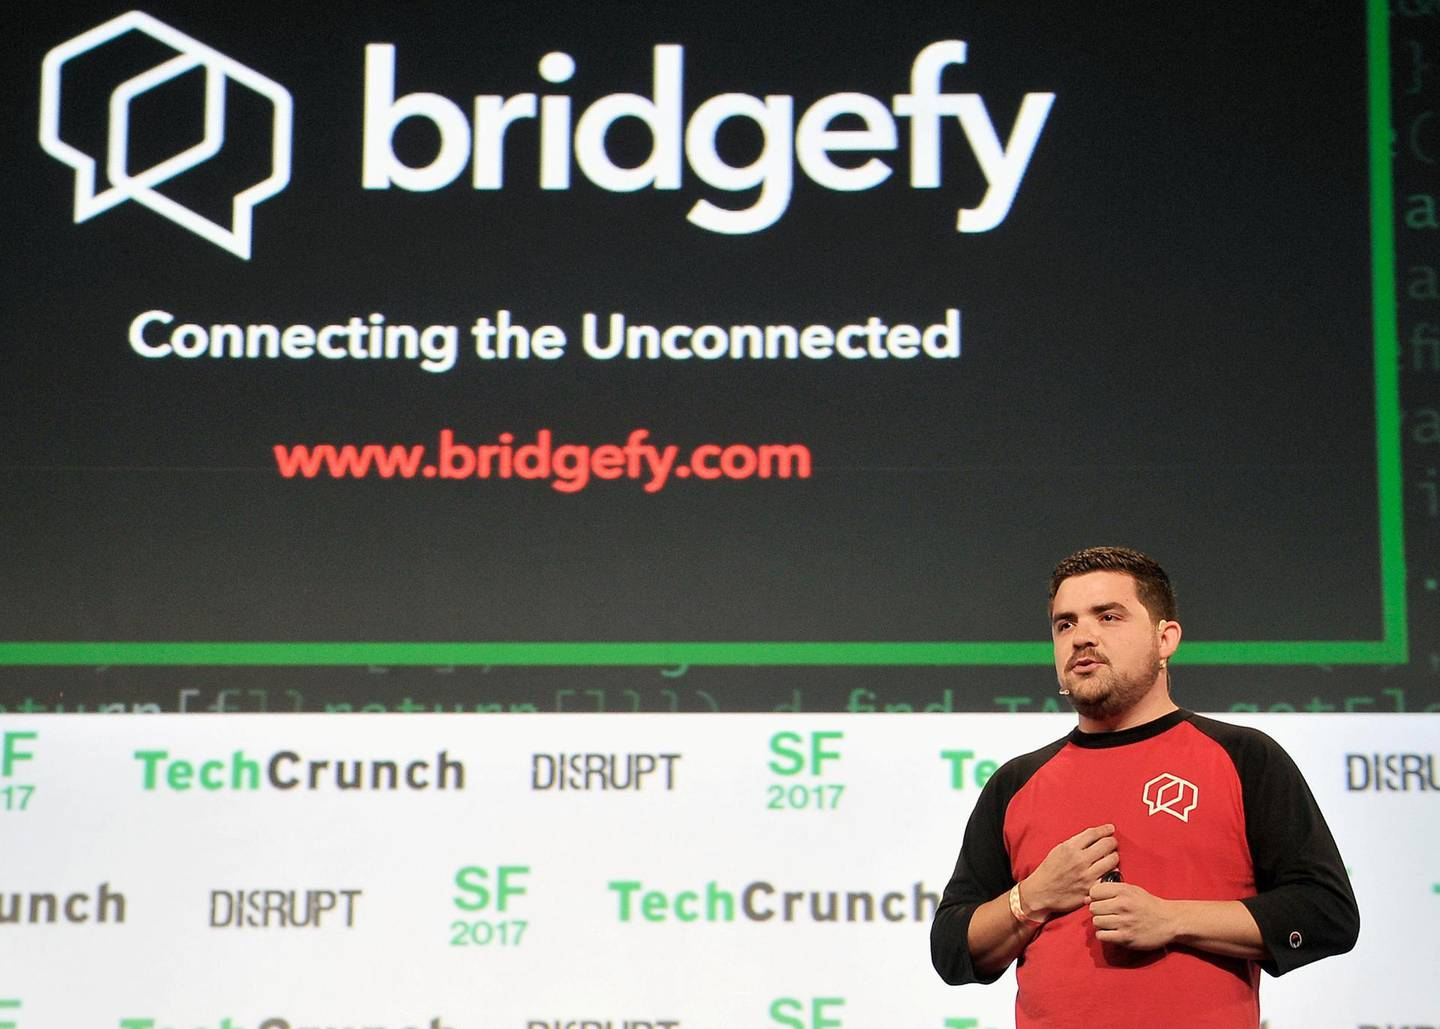 SAN FRANCISCO, CA - SEPTEMBER 18: Bridgefy Co-Founder Jorge Rios participates in the Startup Battlefield Competition during TechCrunch Disrupt SF 2017 at Pier 48 on September 18, 2017 in San Francisco, California.   Steve Jennings/Getty Images for TechCrunch/AFP